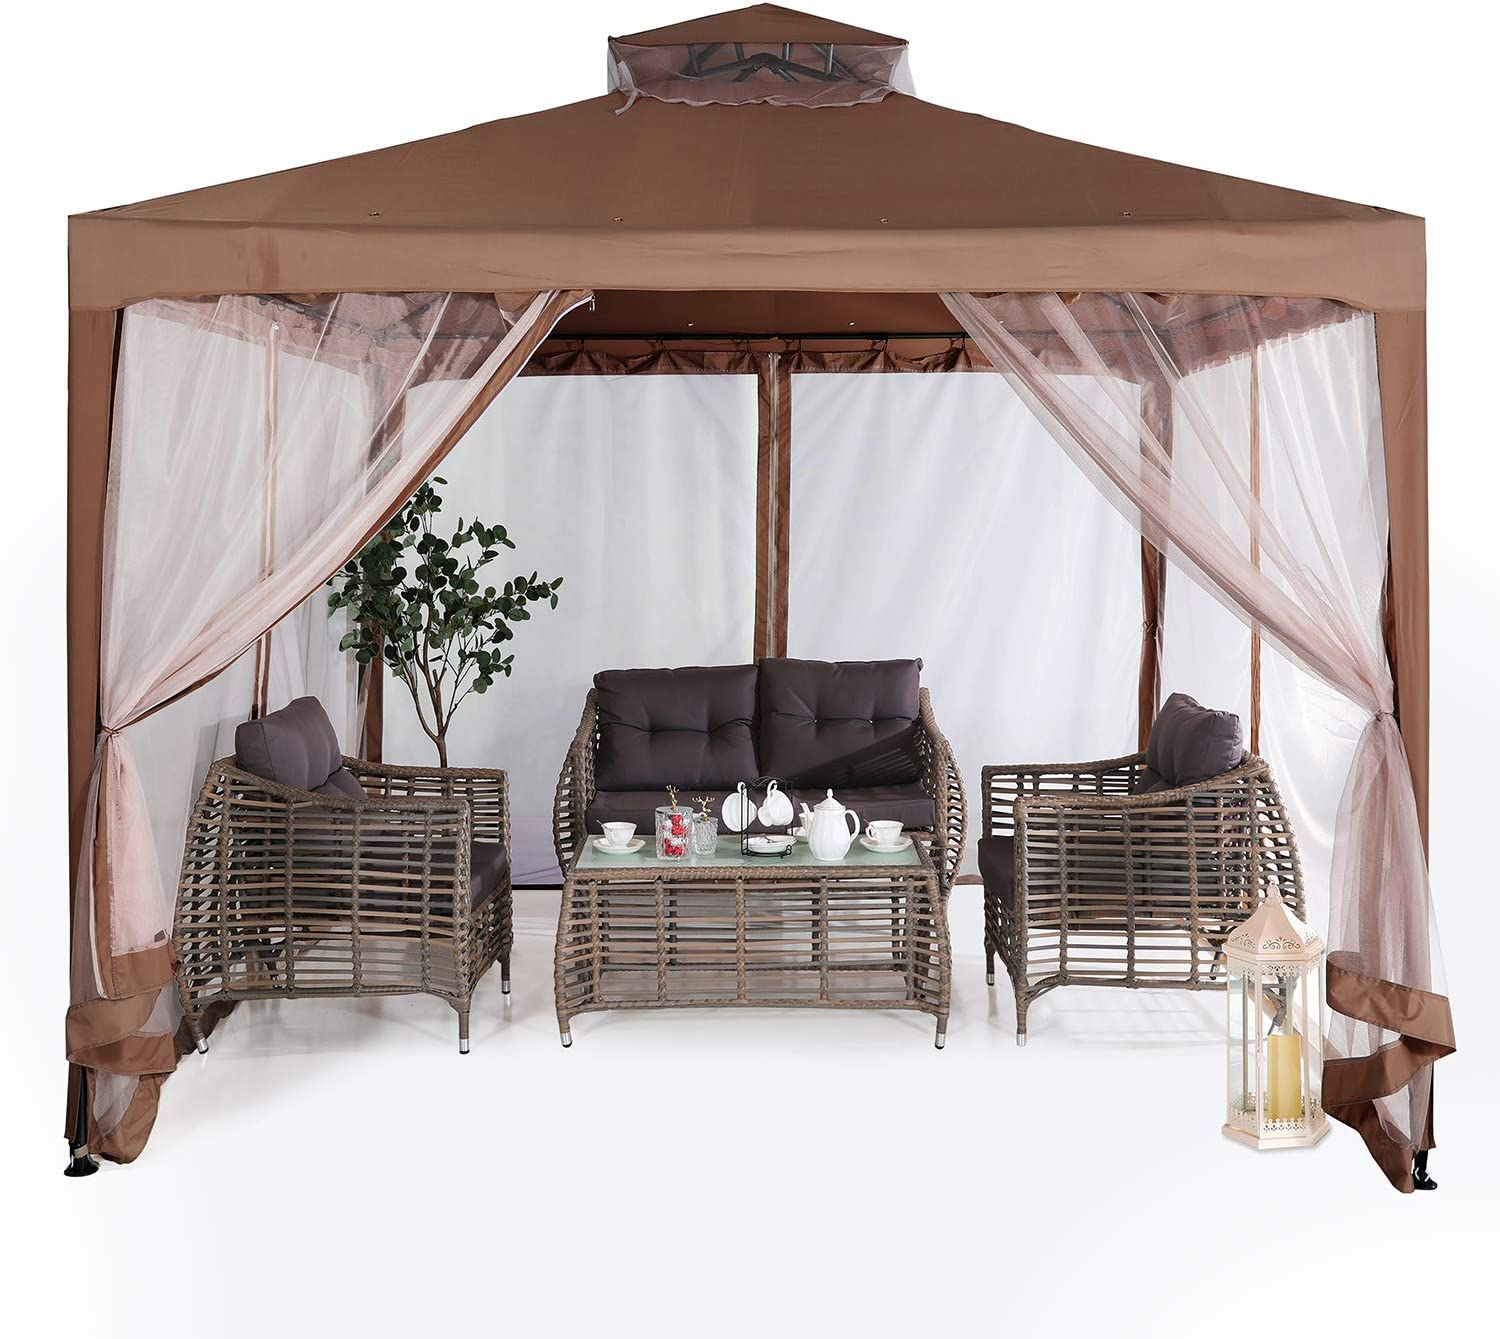 Brown ABCCANOPY 10x10 Pop up Gazebo Tent with Mosquito Netting Outdoor Instant Gazebo Canopy Shelter